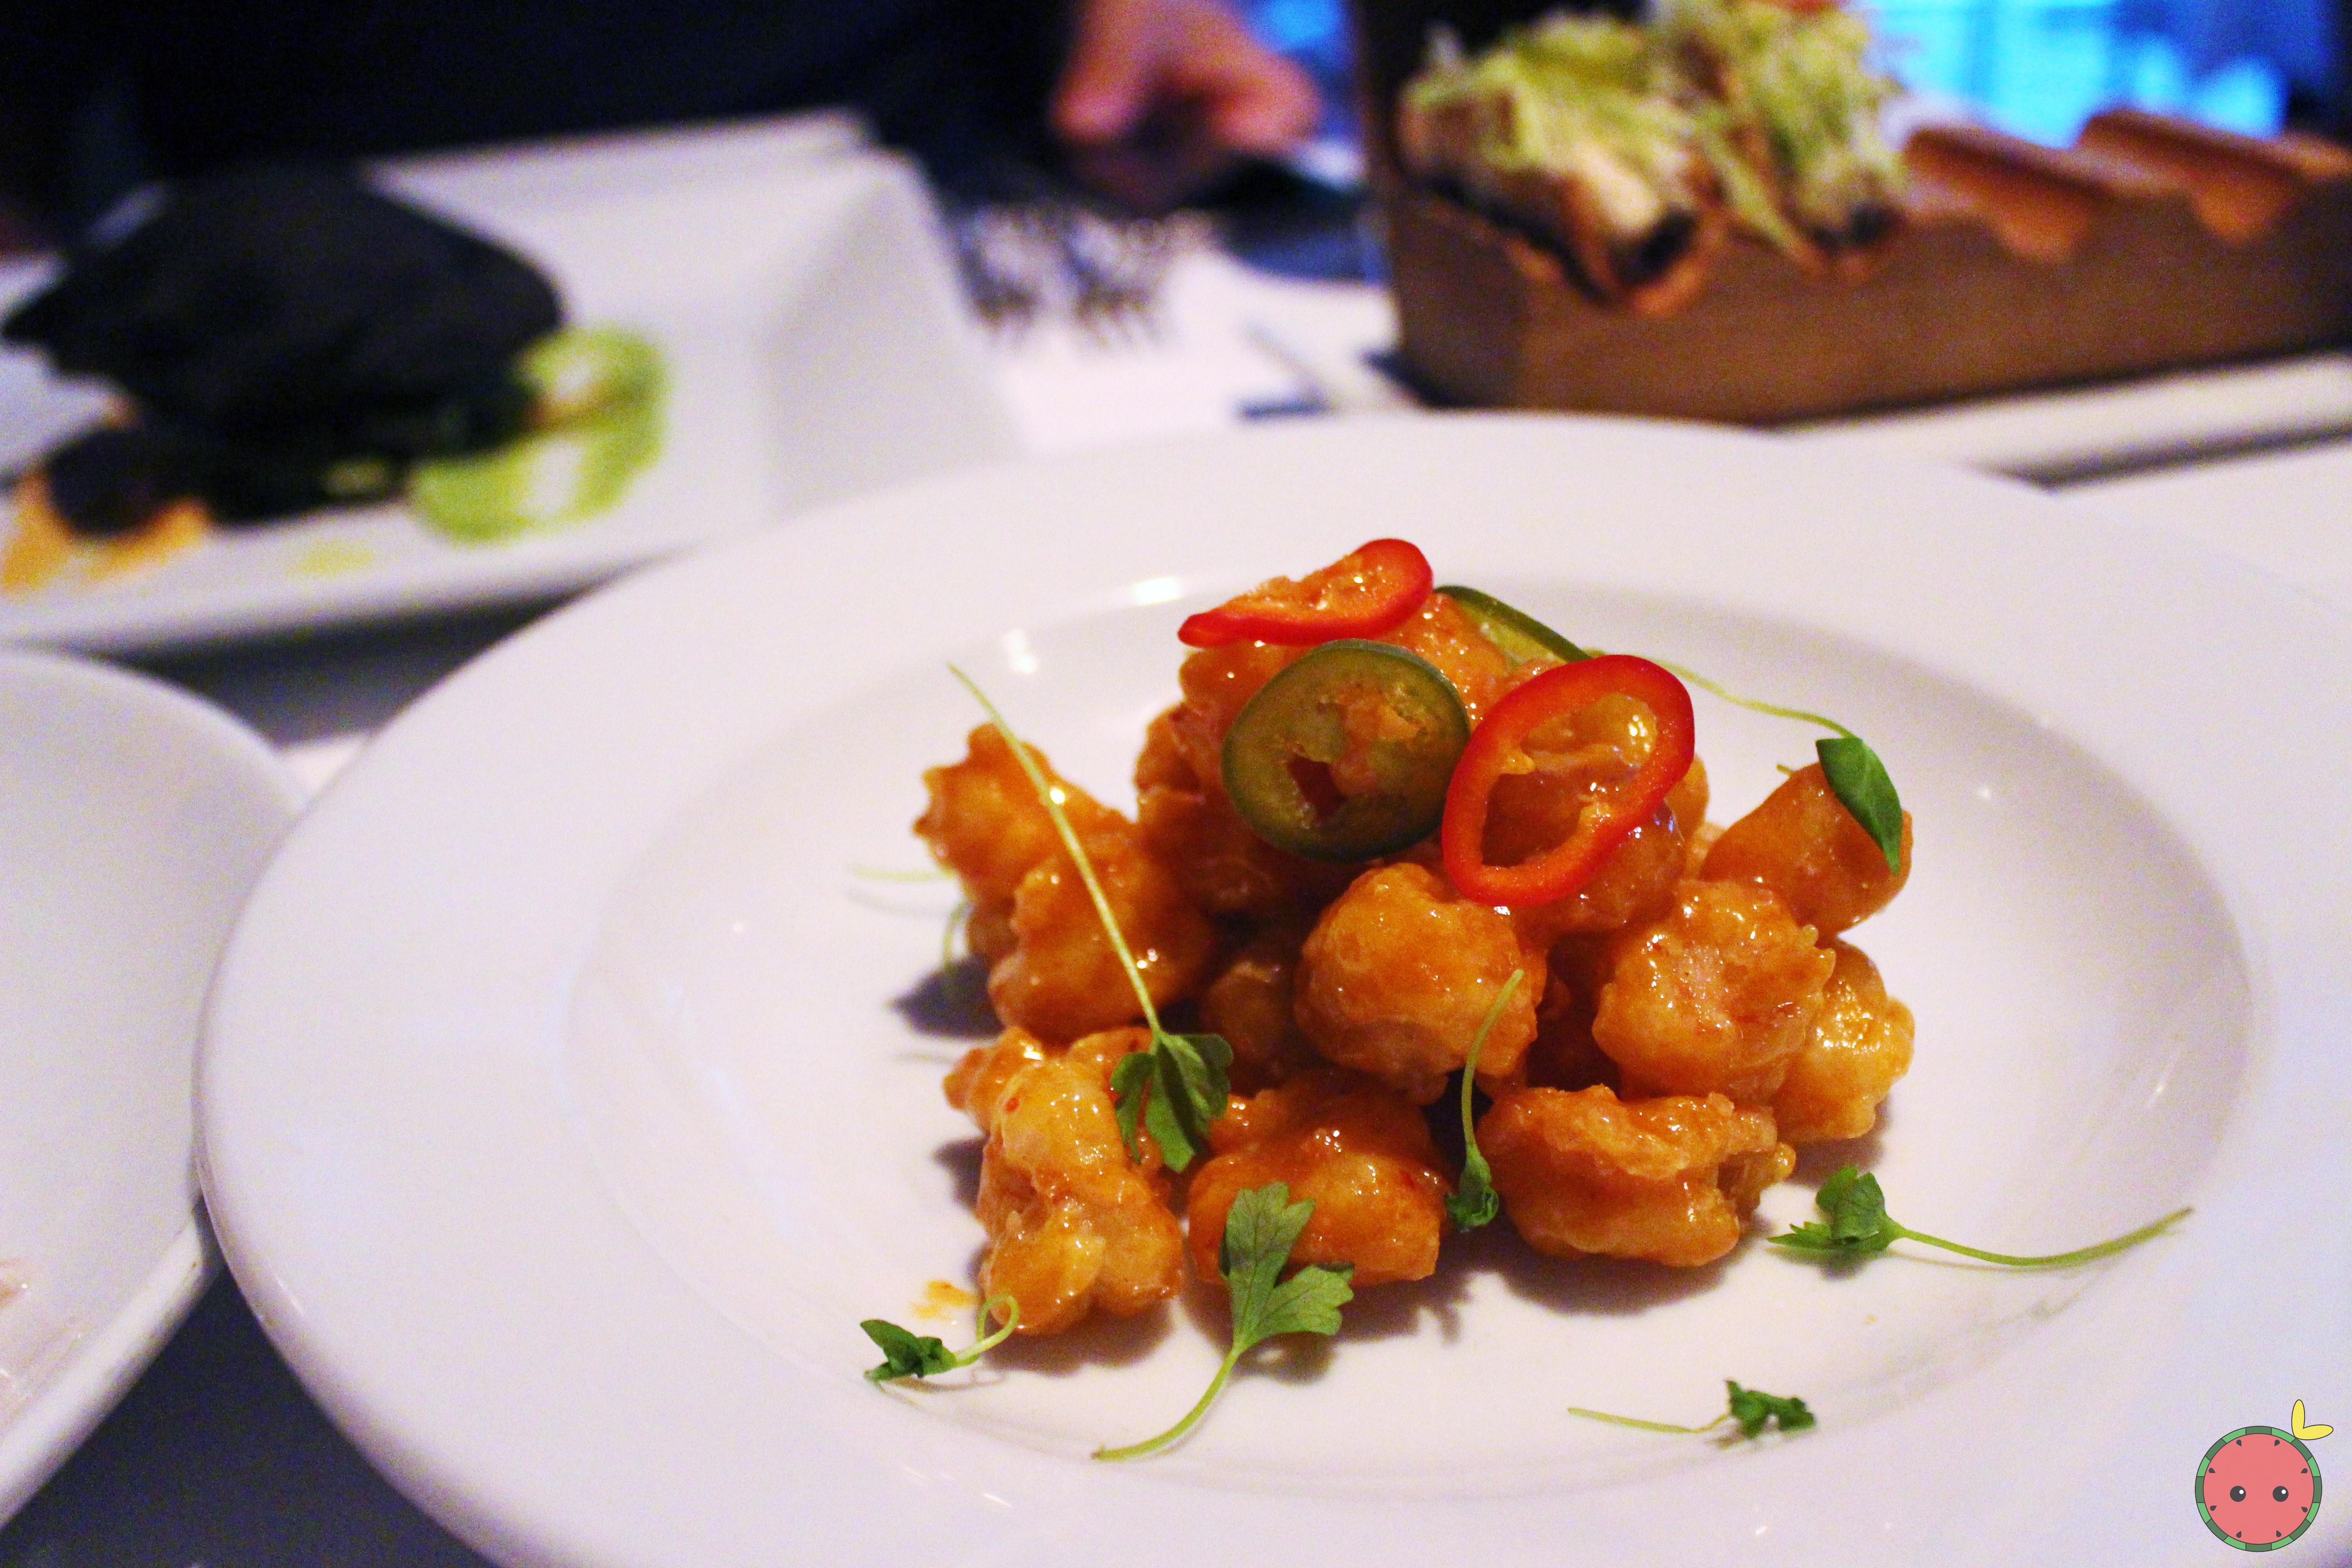 Chicharron - Crispy rock shrimp coated with rice and corn flour with a sweet and spicy panka sauce w